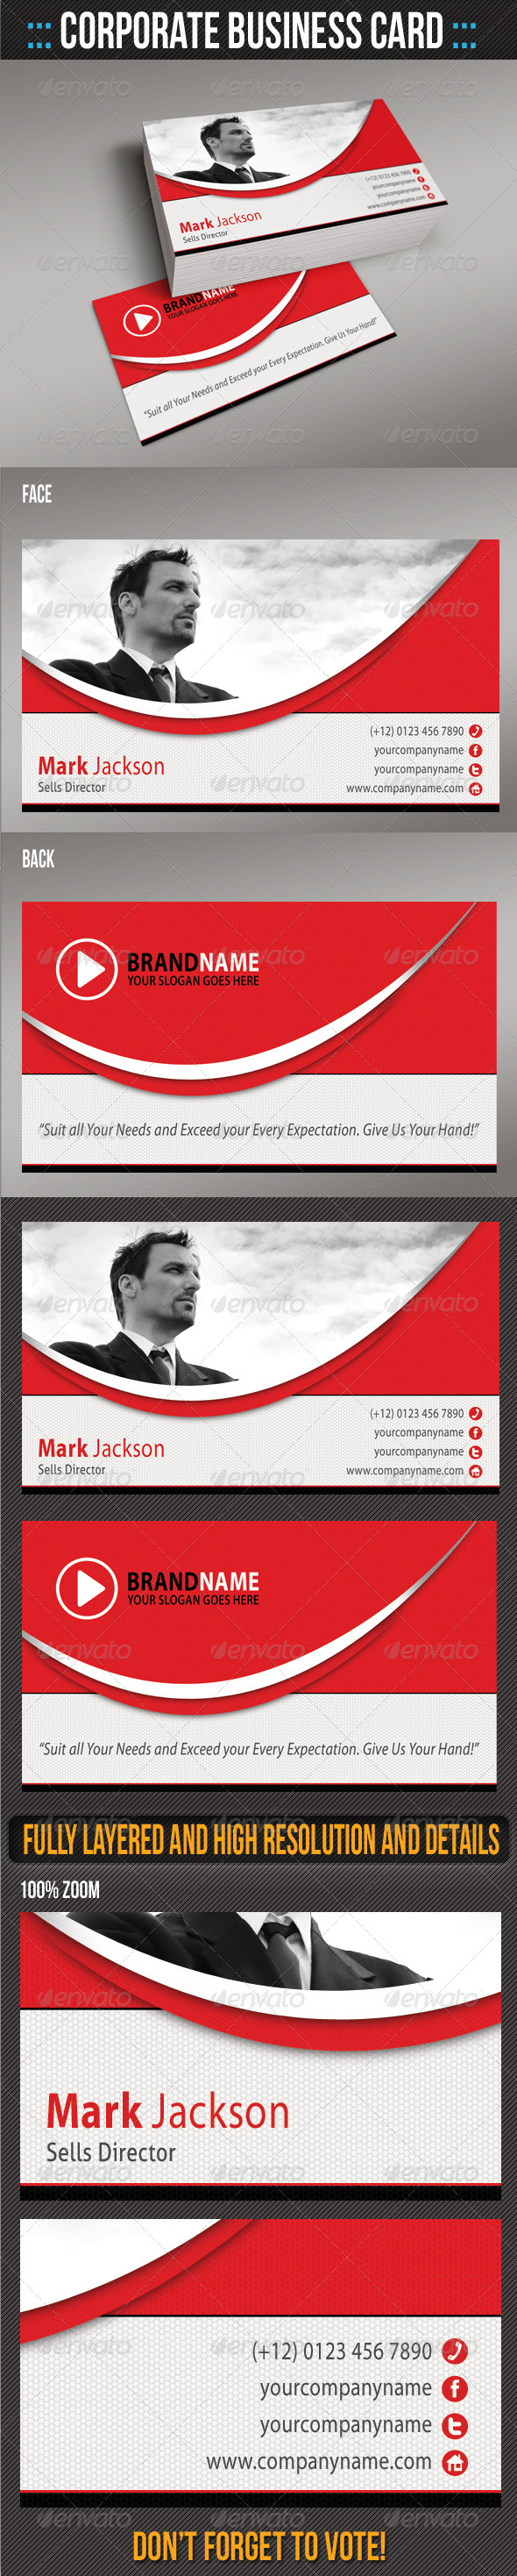 GraphicRiver Corporate Business Card 02 5838636